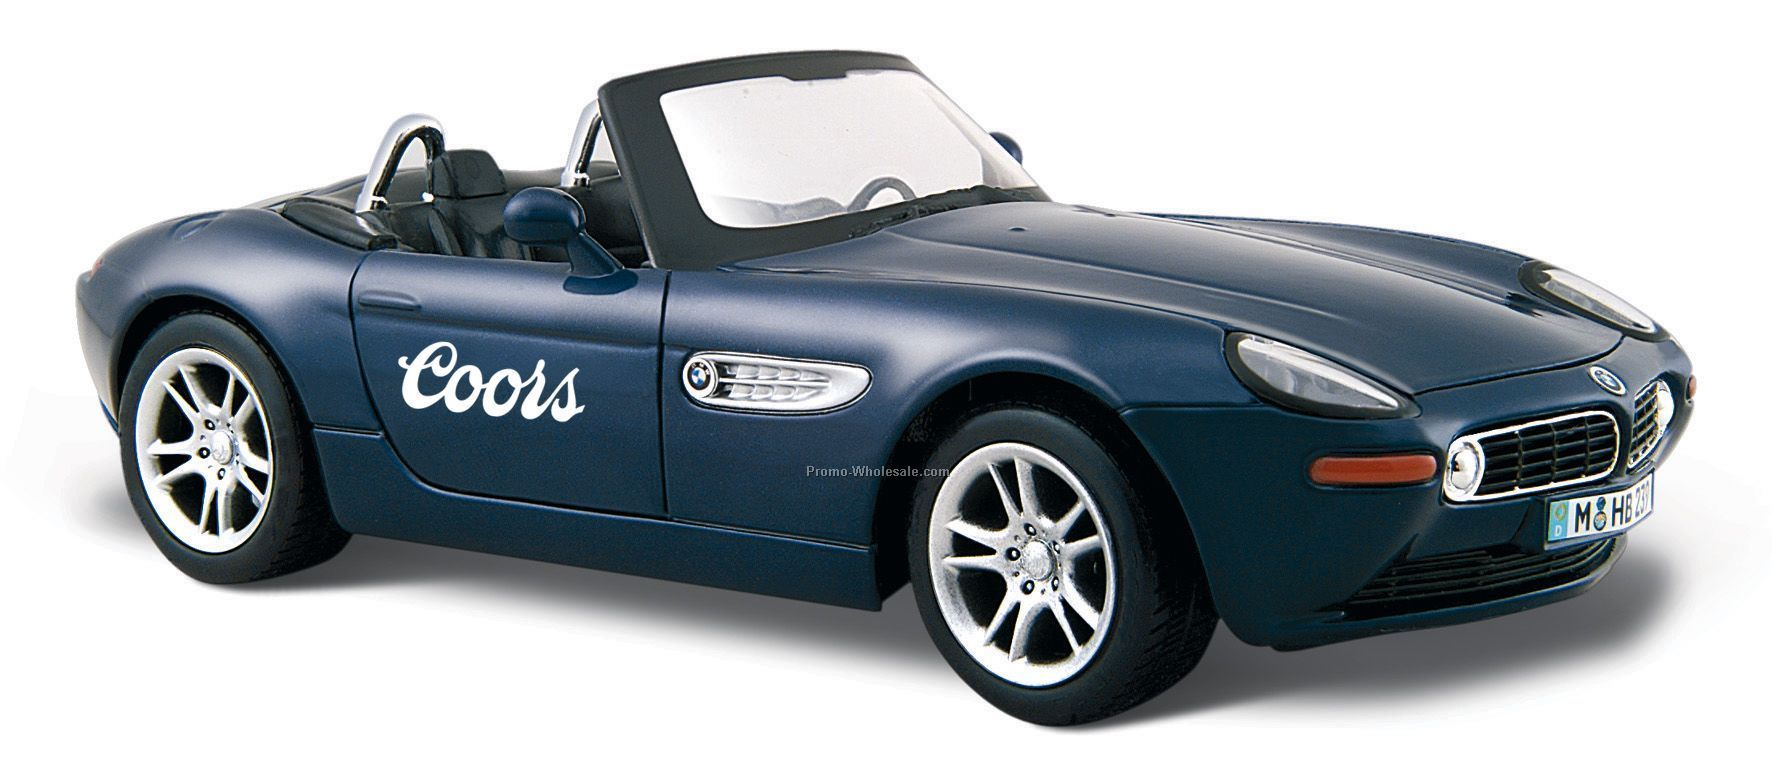 7 Quot X2 1 2 Quot X3 Quot 31996 Bmw Z8 Die Cast Replica Car Wholesale China